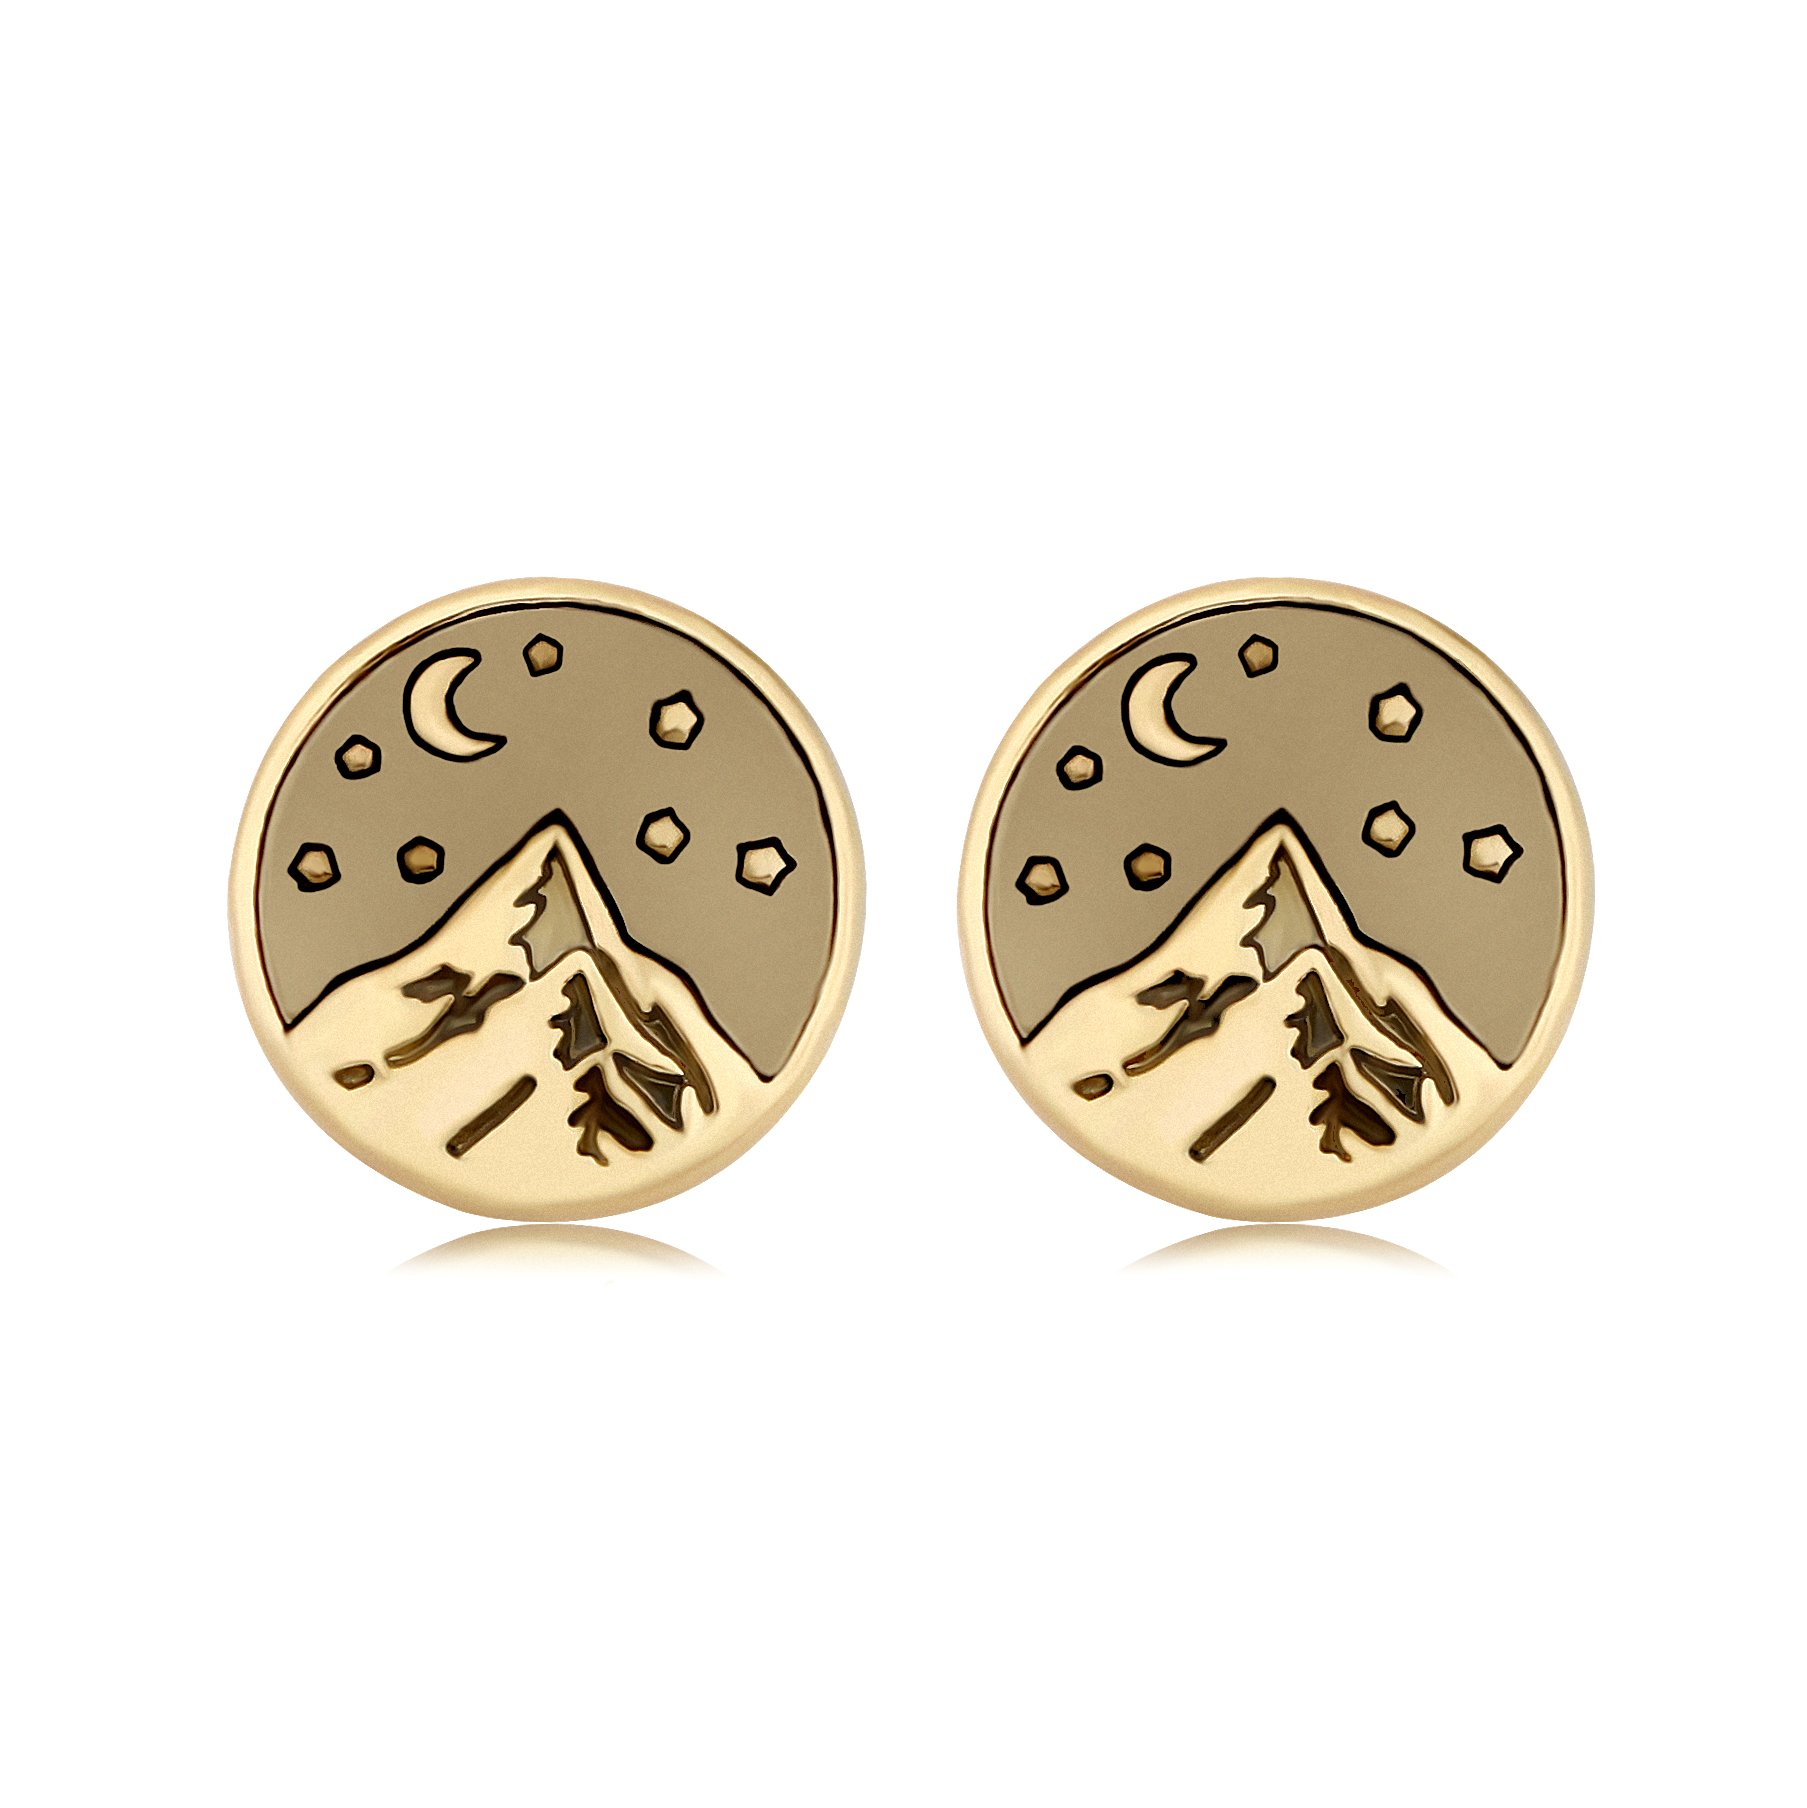 SENFAI Mountain Top Star Moon Night Earrings for Climbing Hiking Sports Lover (Gold)